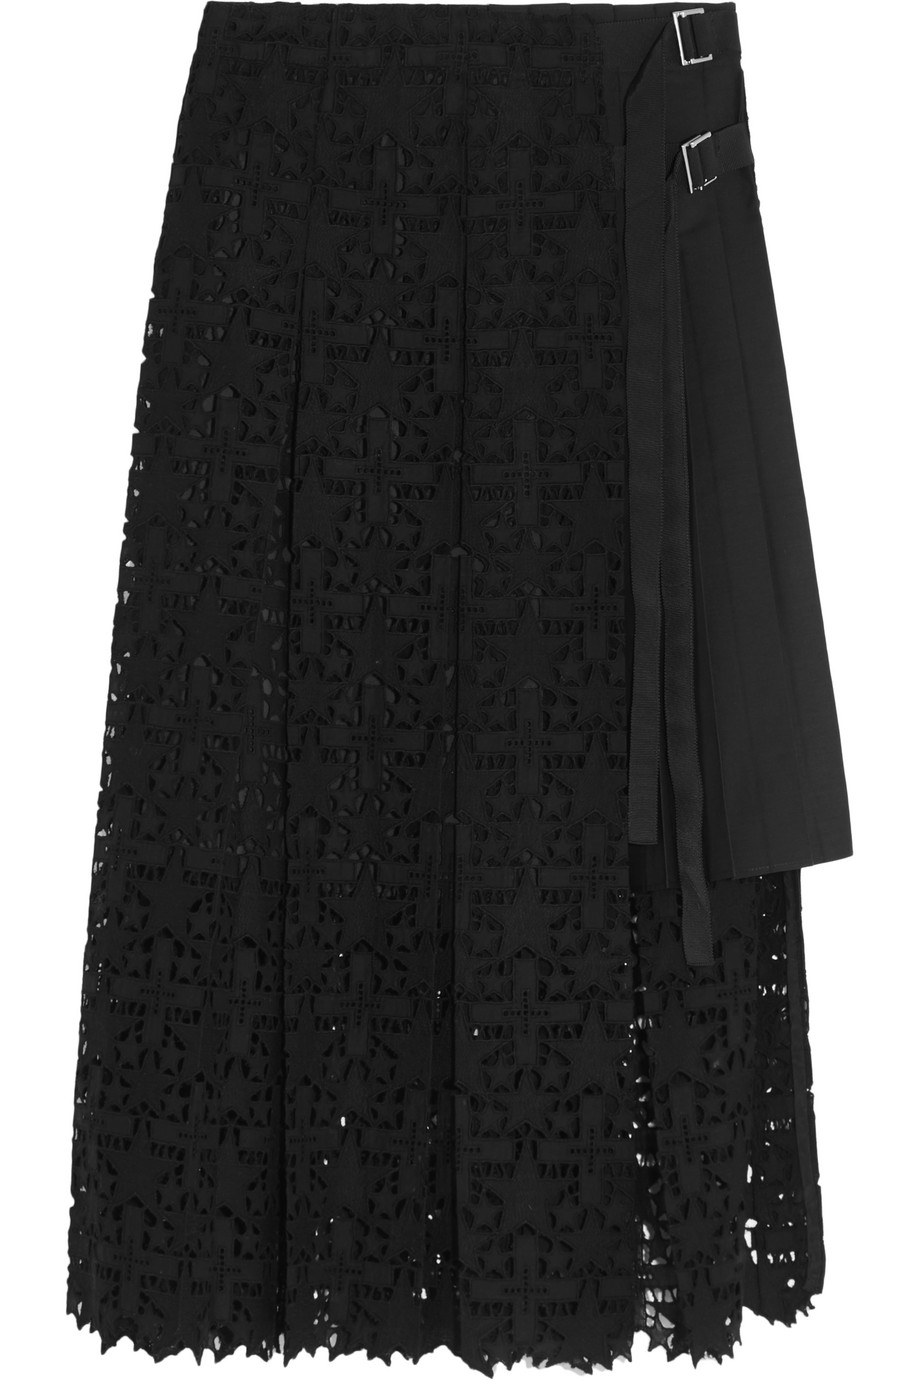 Sacai Pleated Broderie Anglaise Cotton Skirt, Black, Women's, Size: 4